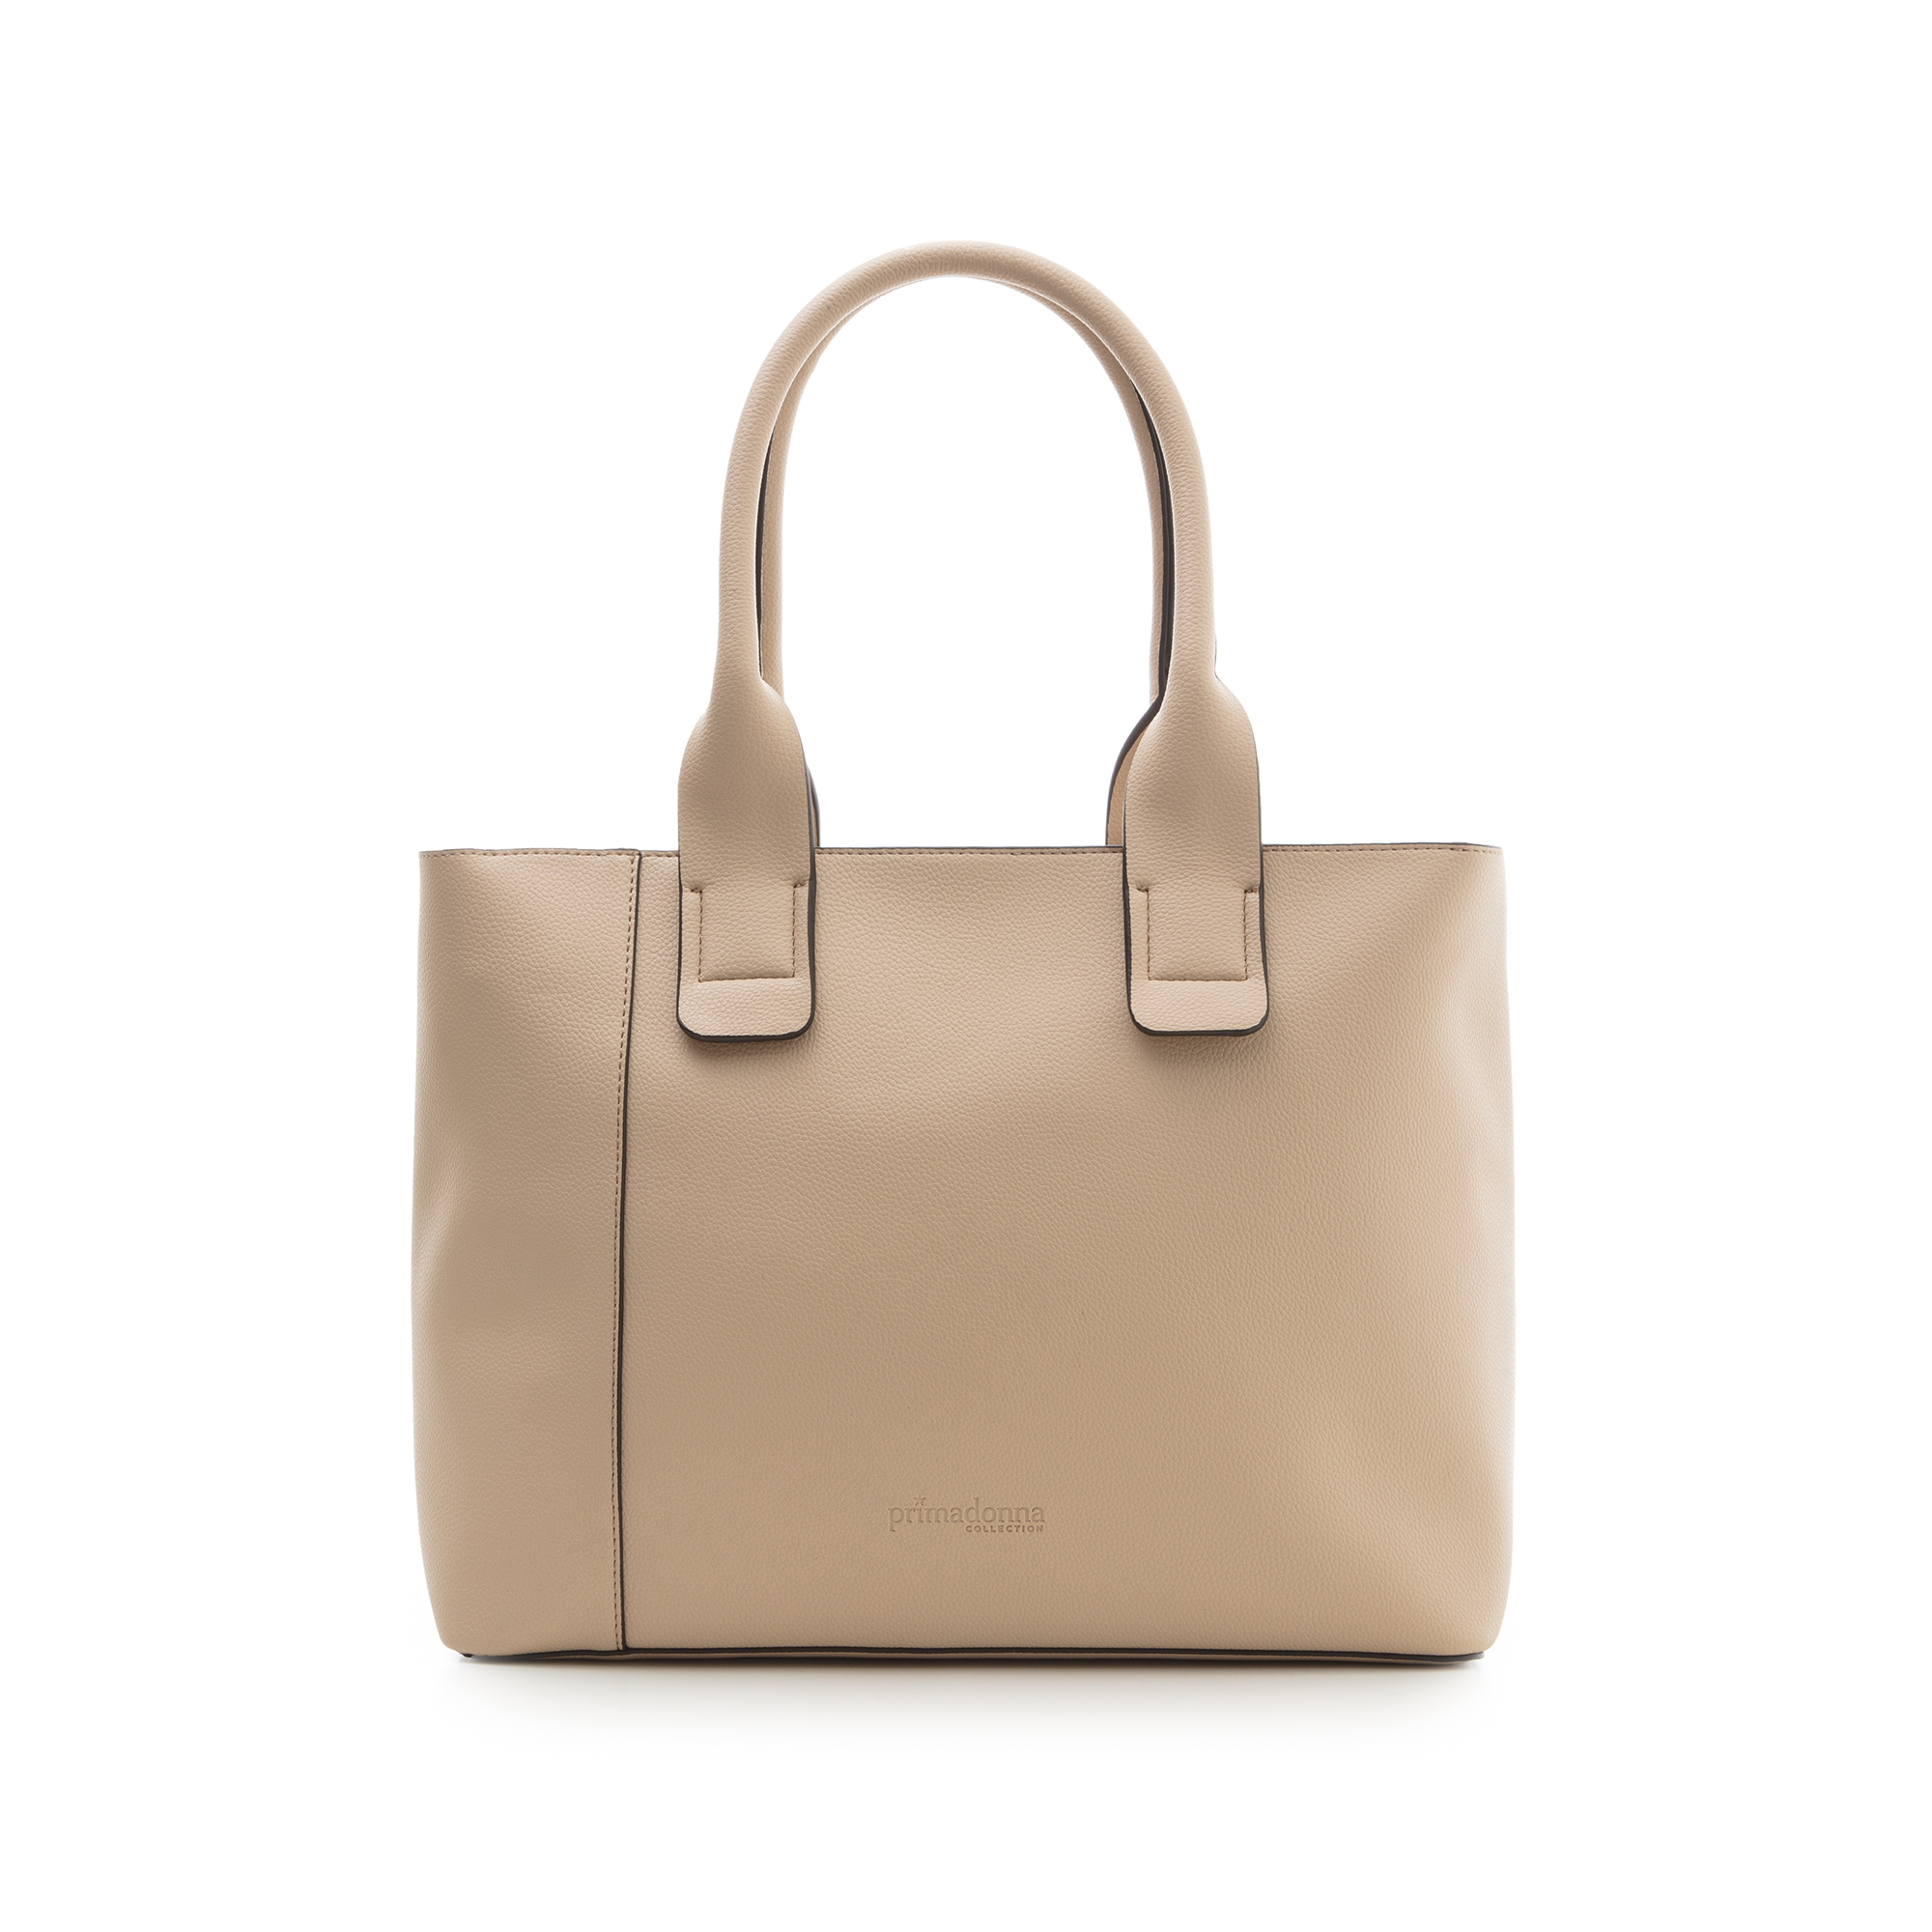 Borsa media beige in eco-pelle